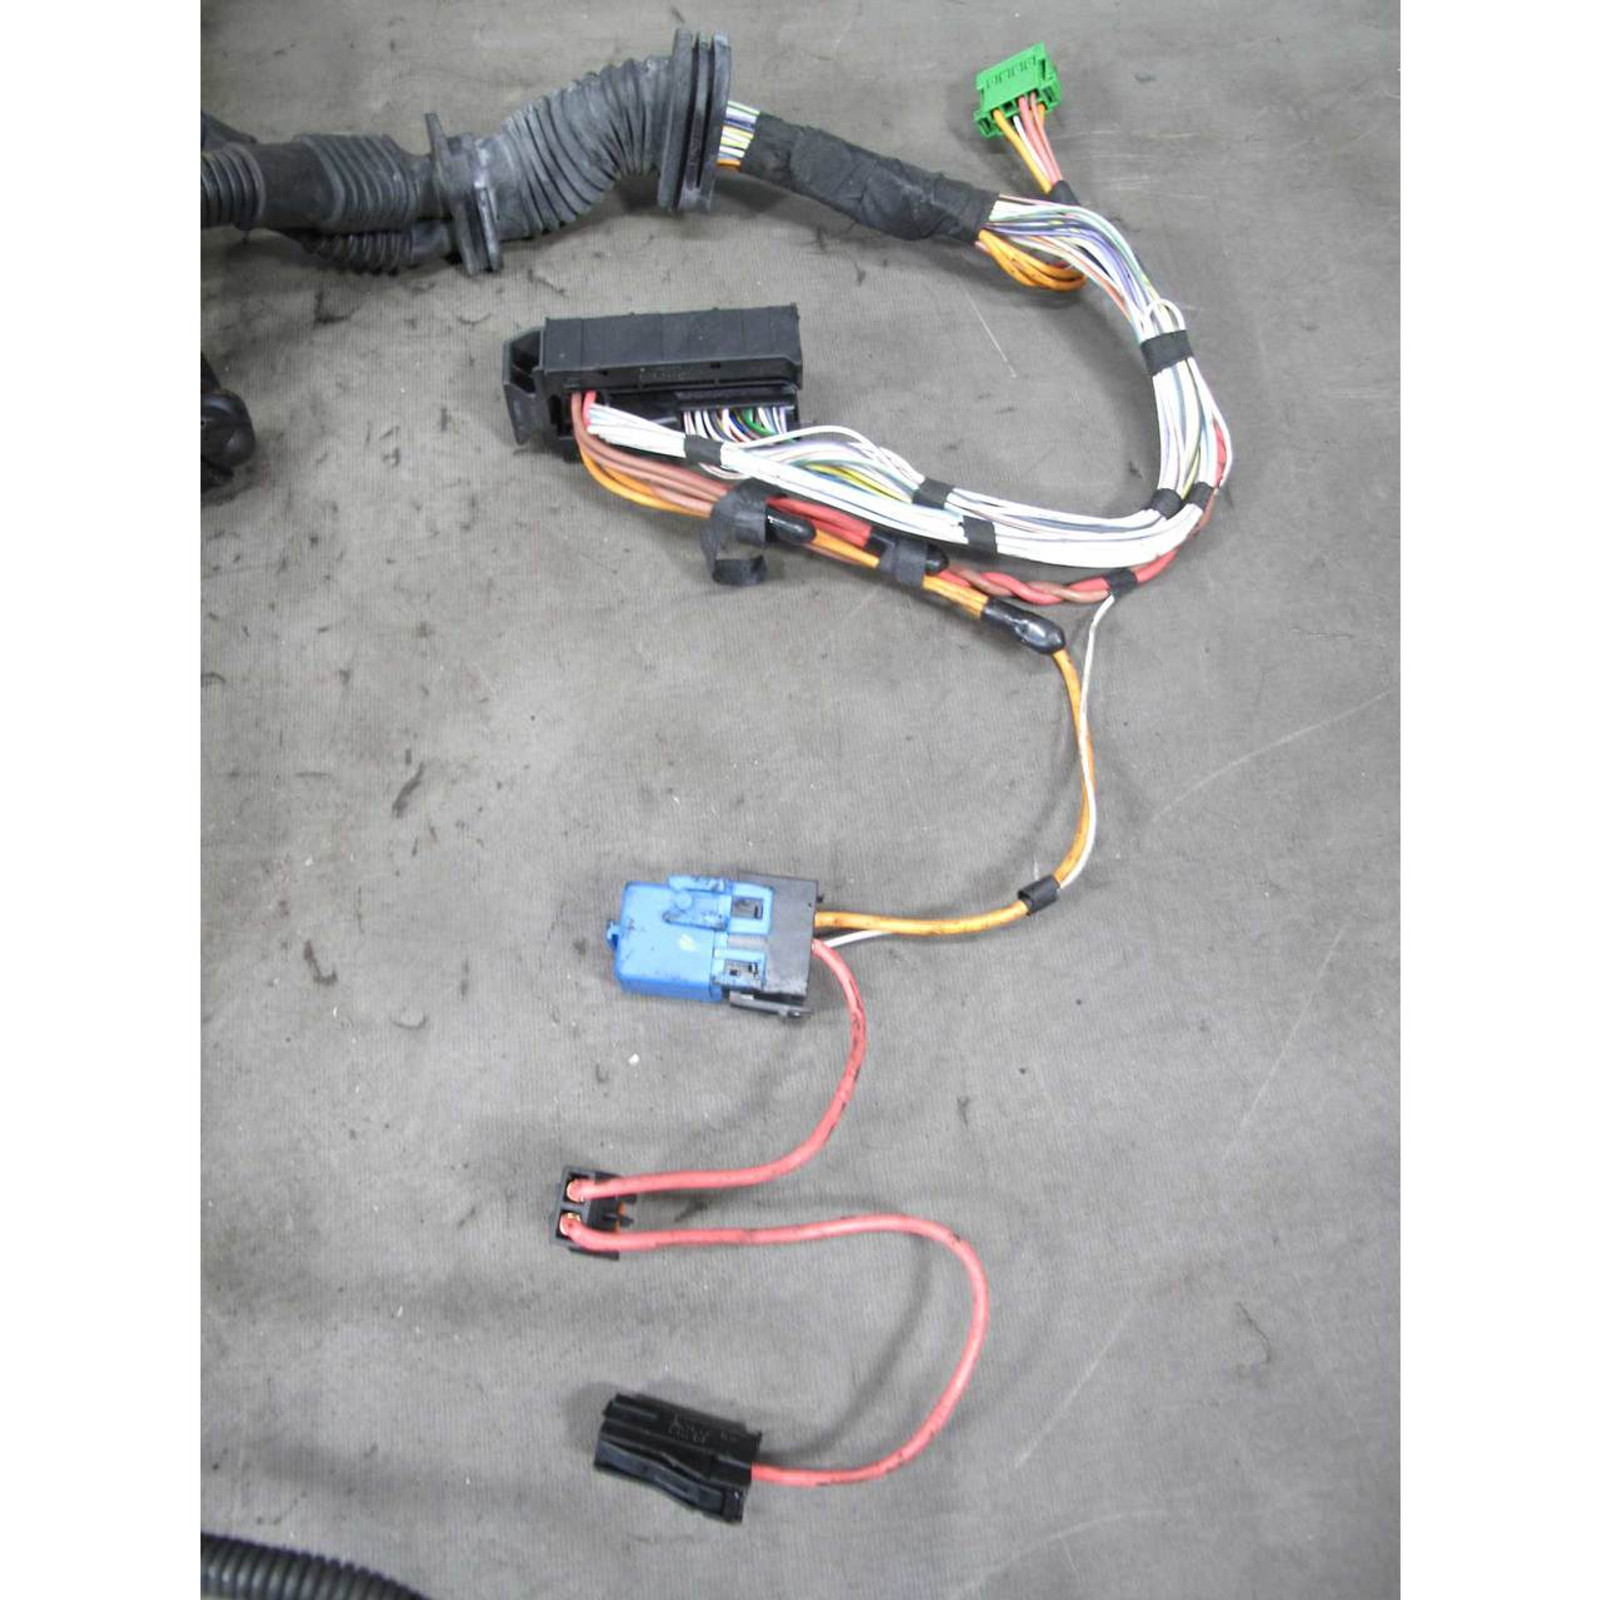 2006 Bmw E60 E61 525 530 N52 6-cyl Engine Igniton Coil And Fuel Injector Wiring